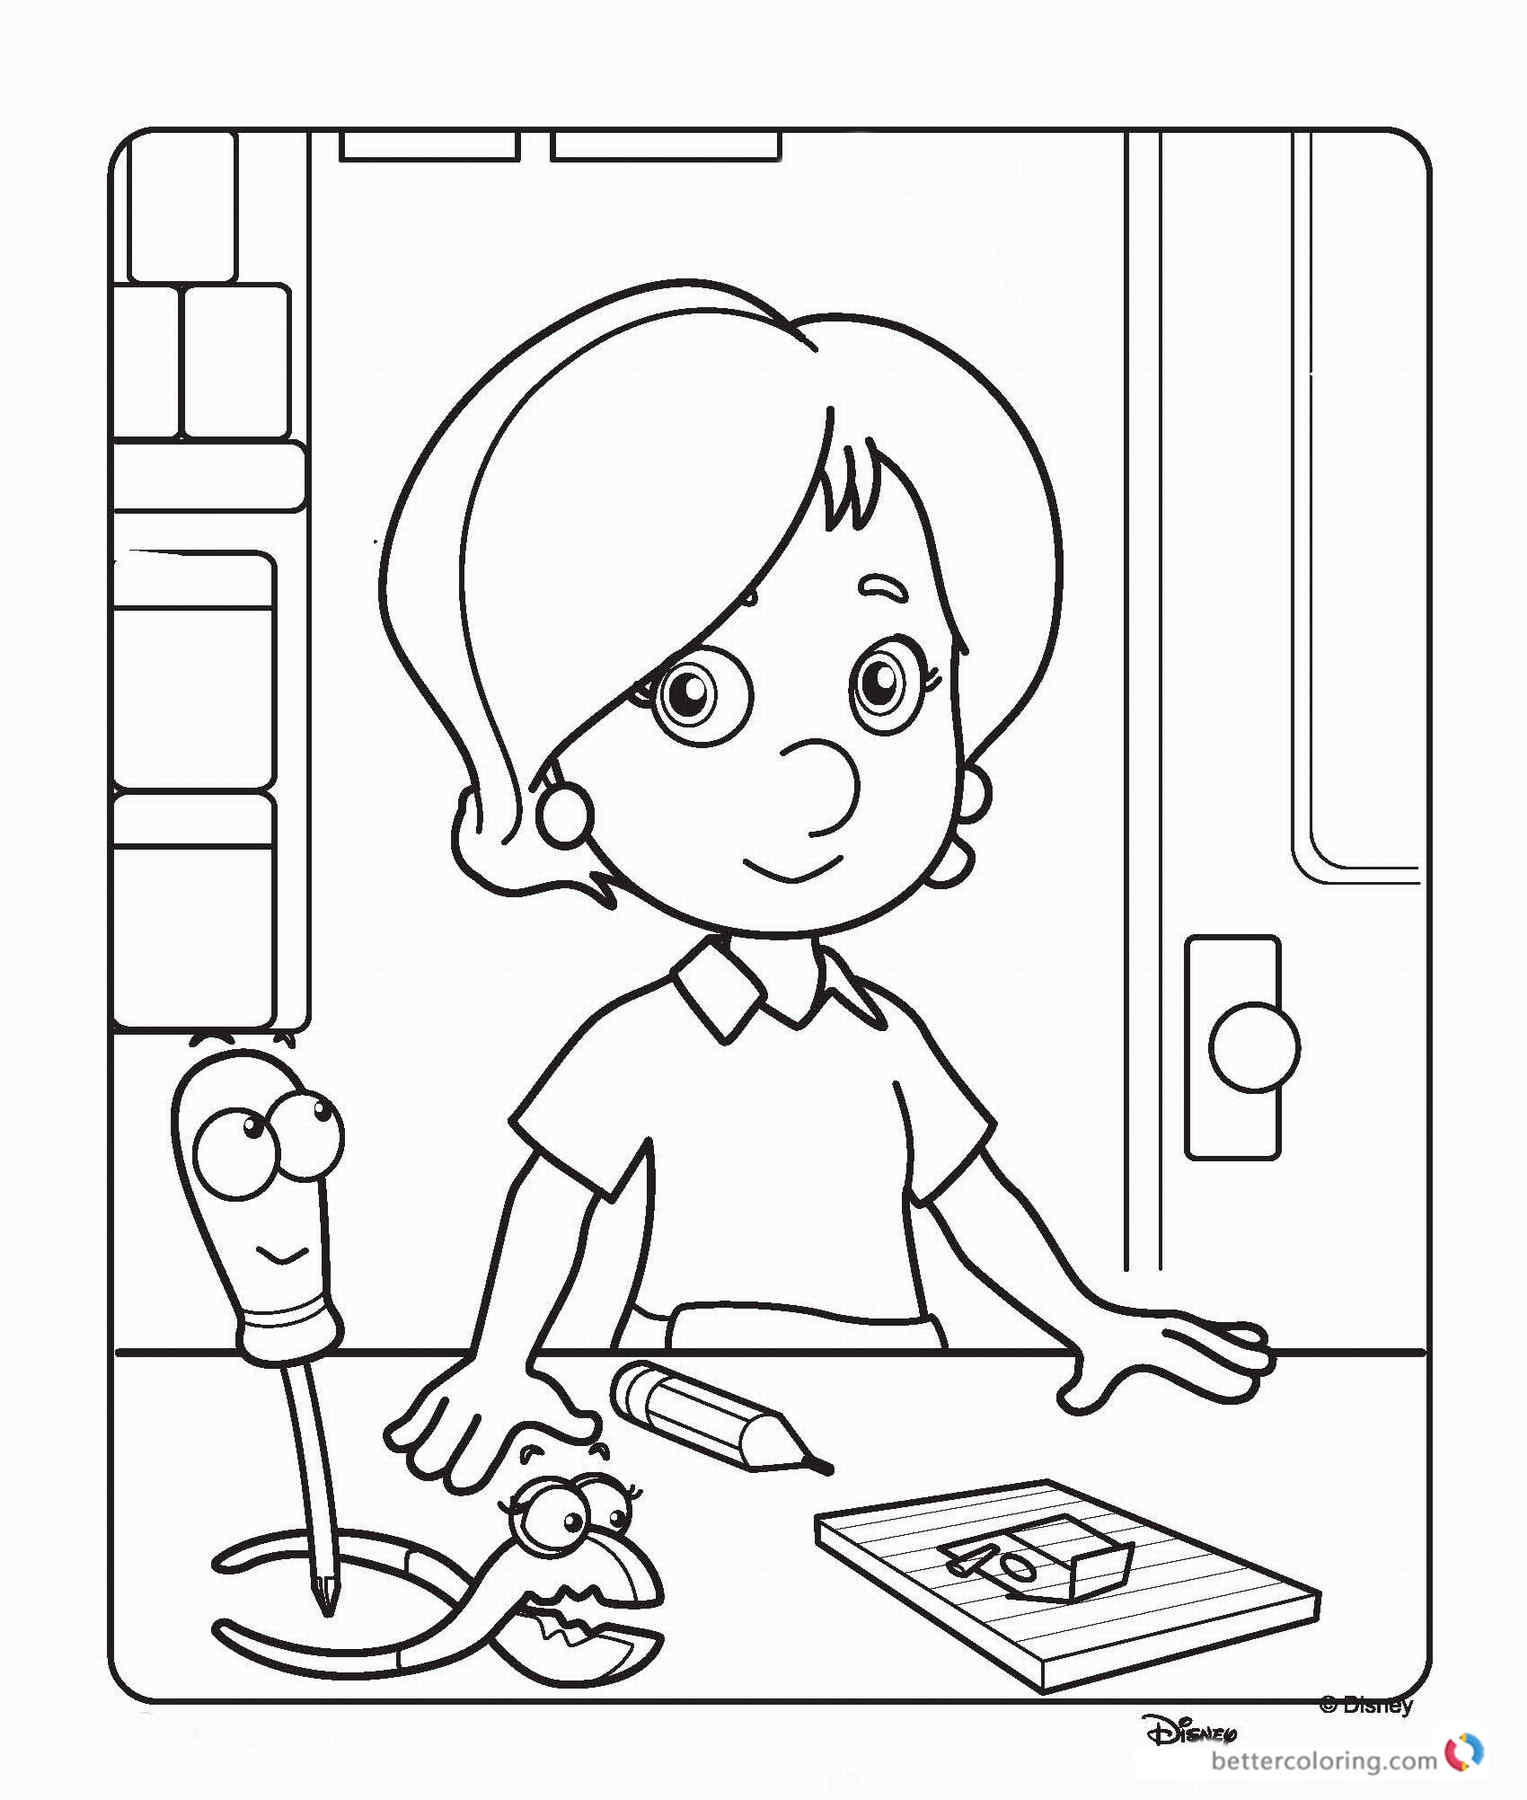 Bob the builder coloring pages free printable coloring pages for Free coloring page maker